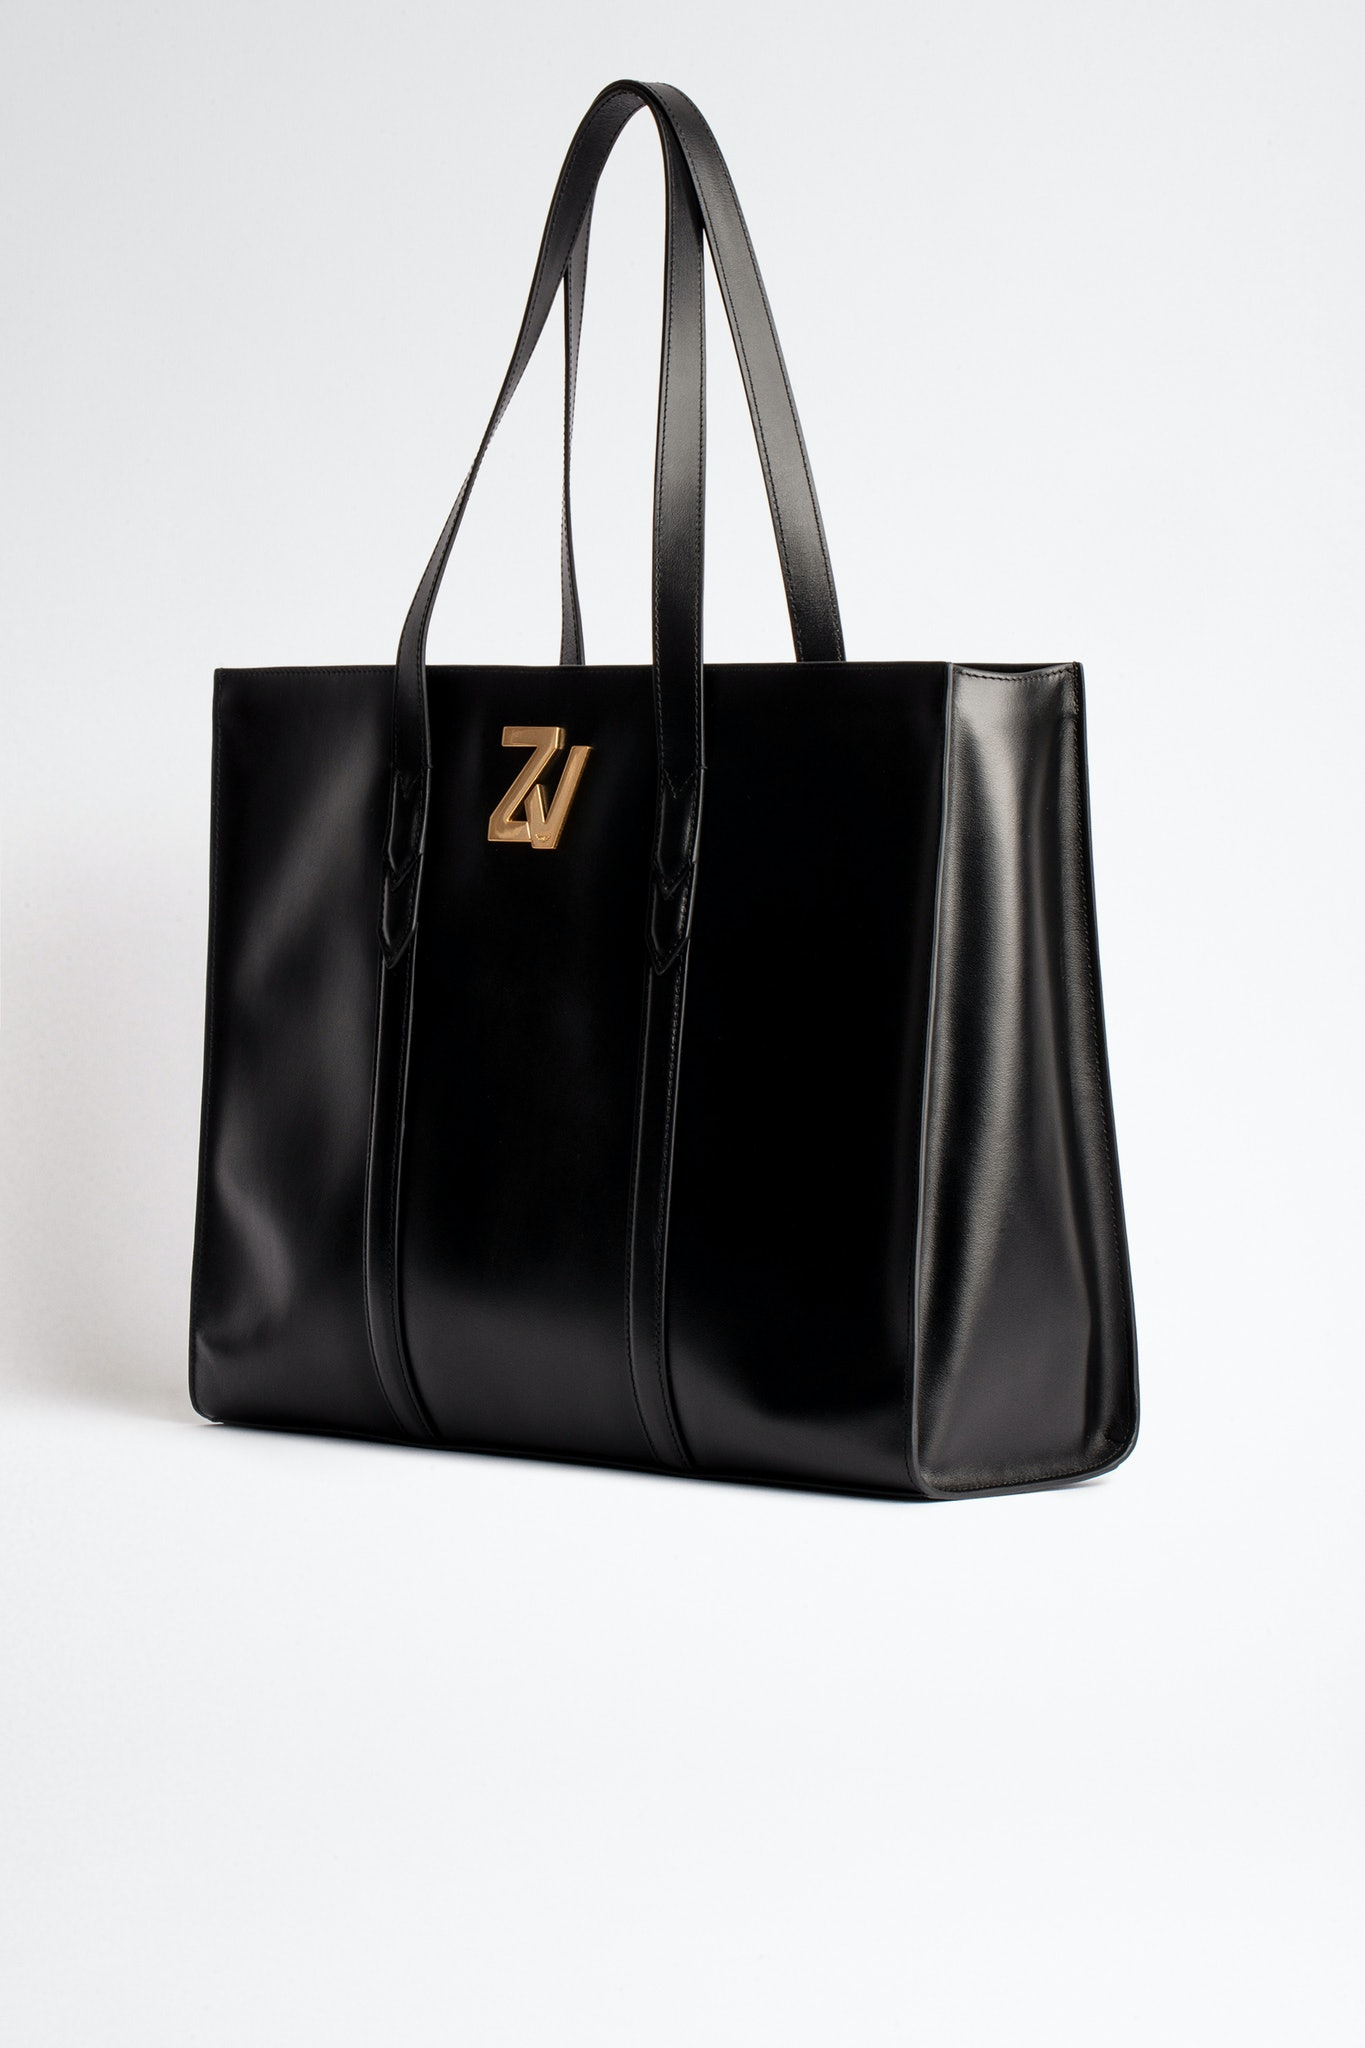 ZV Initiale Le Tote Bag